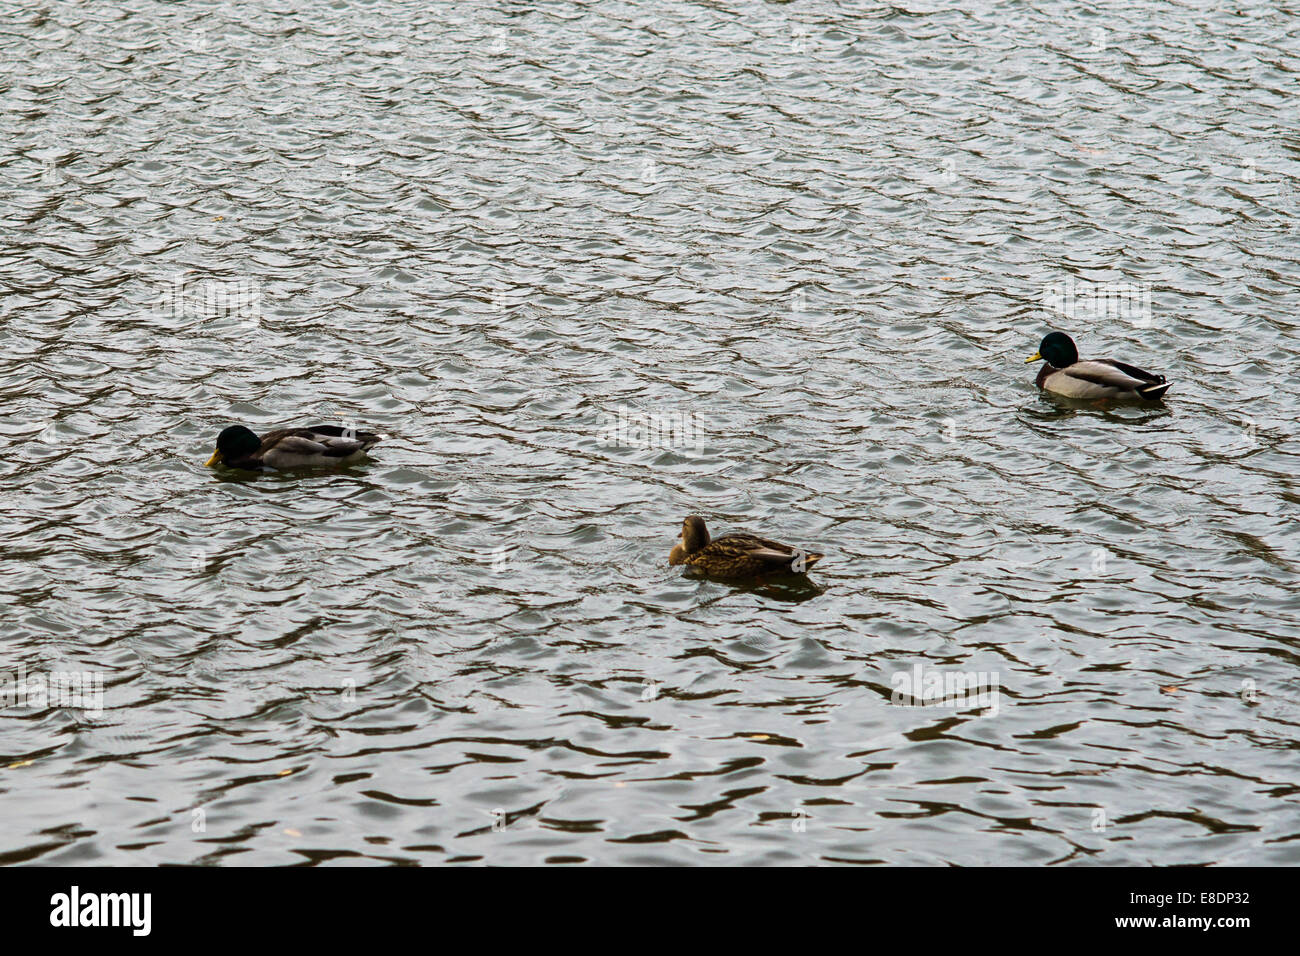 Three ducks rocks on the waves of the cold autumn pond. Damp Weather. - Stock Image